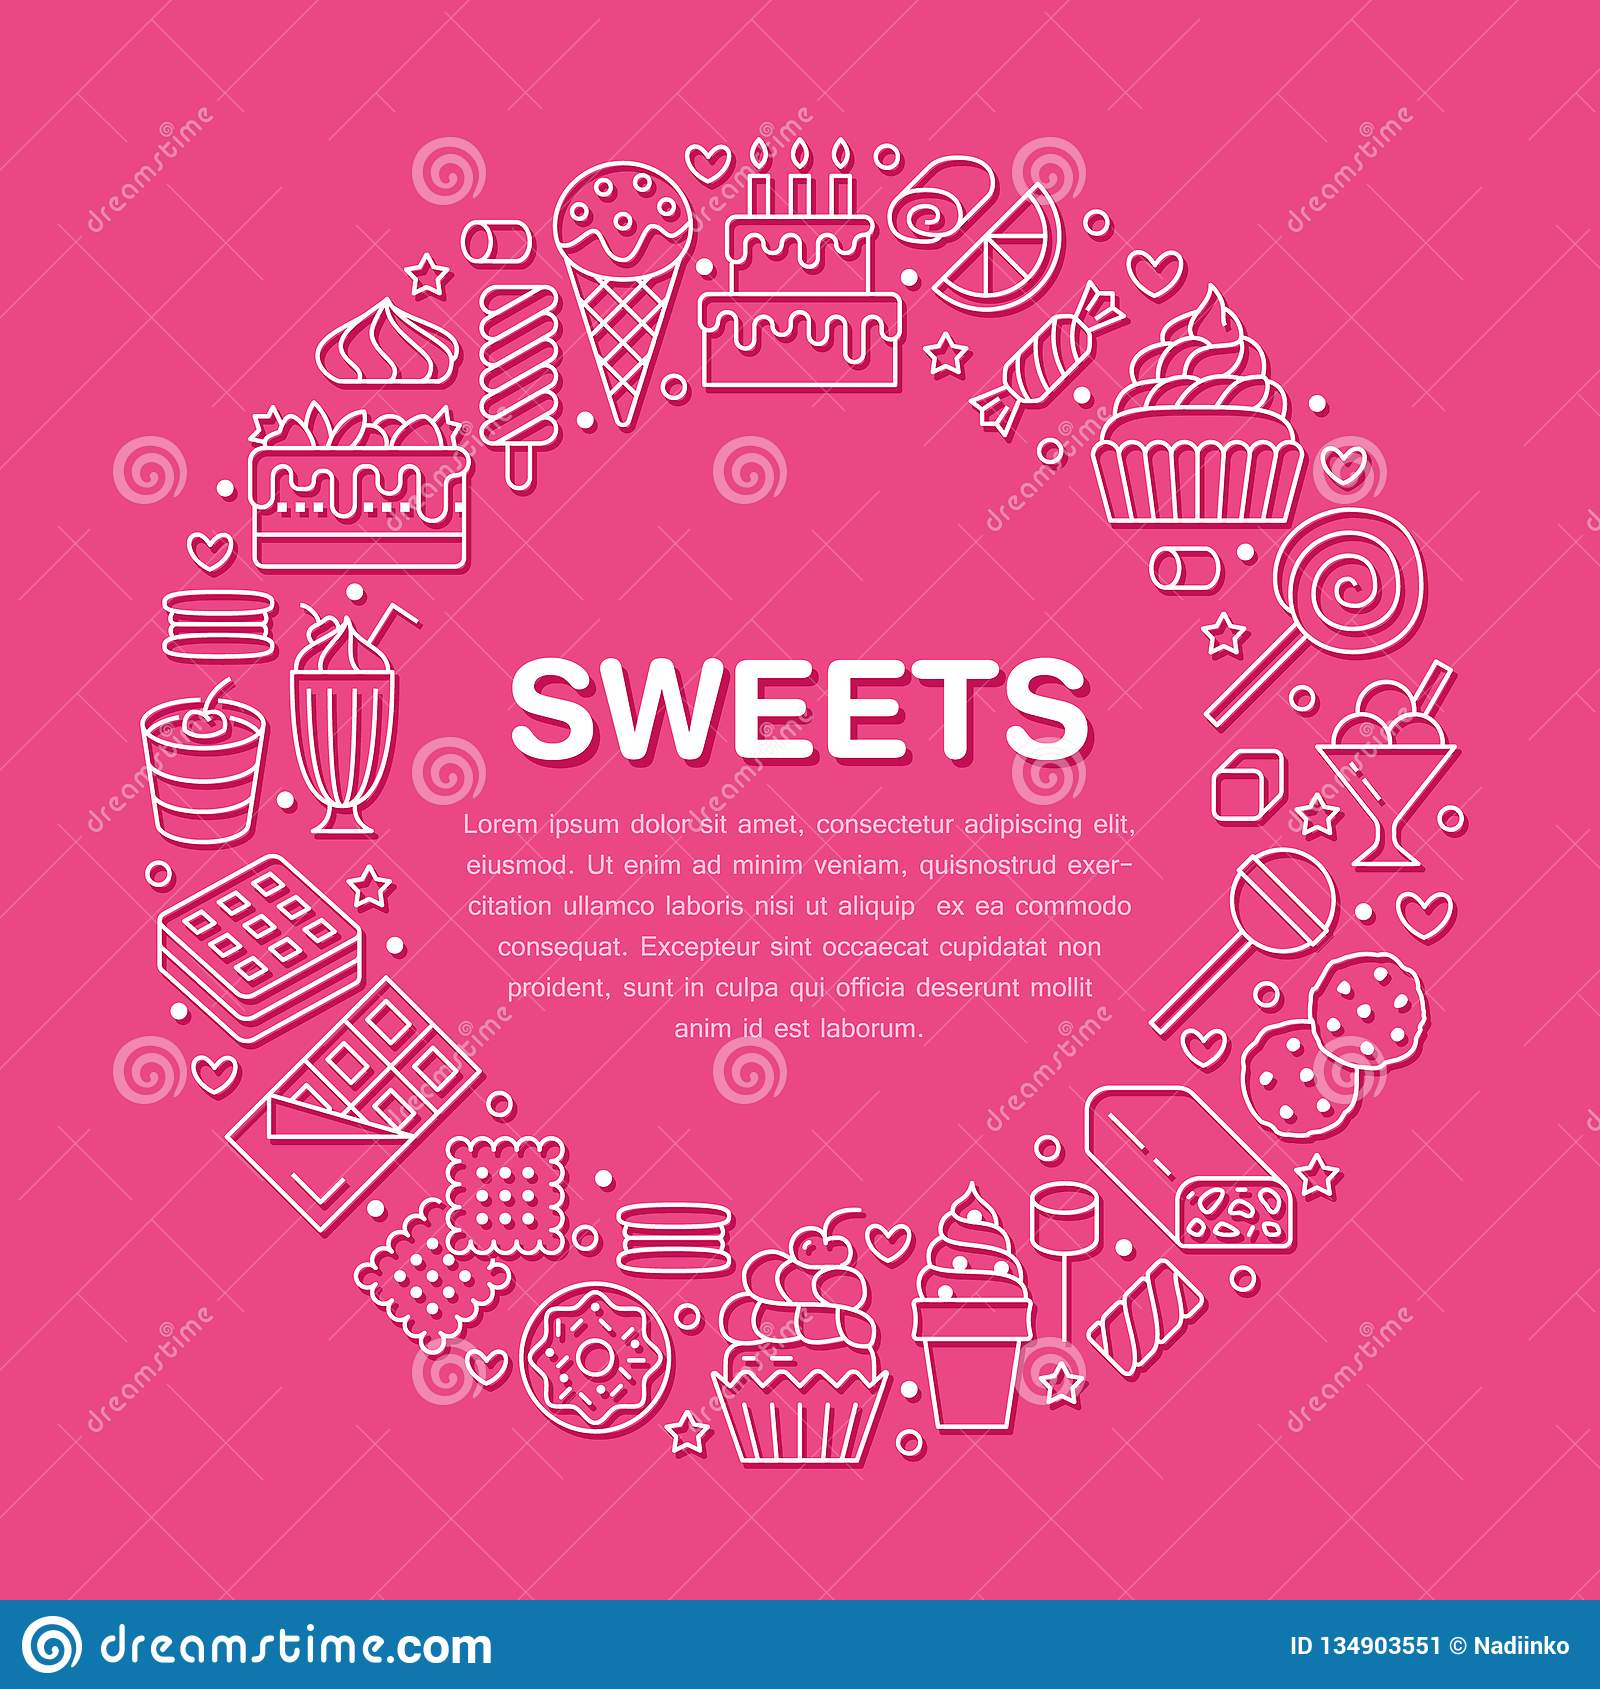 Sweet food round poster with flat line icons. Pastry vector illustrations - lollipop, chocolate bar, milkshake, cookie